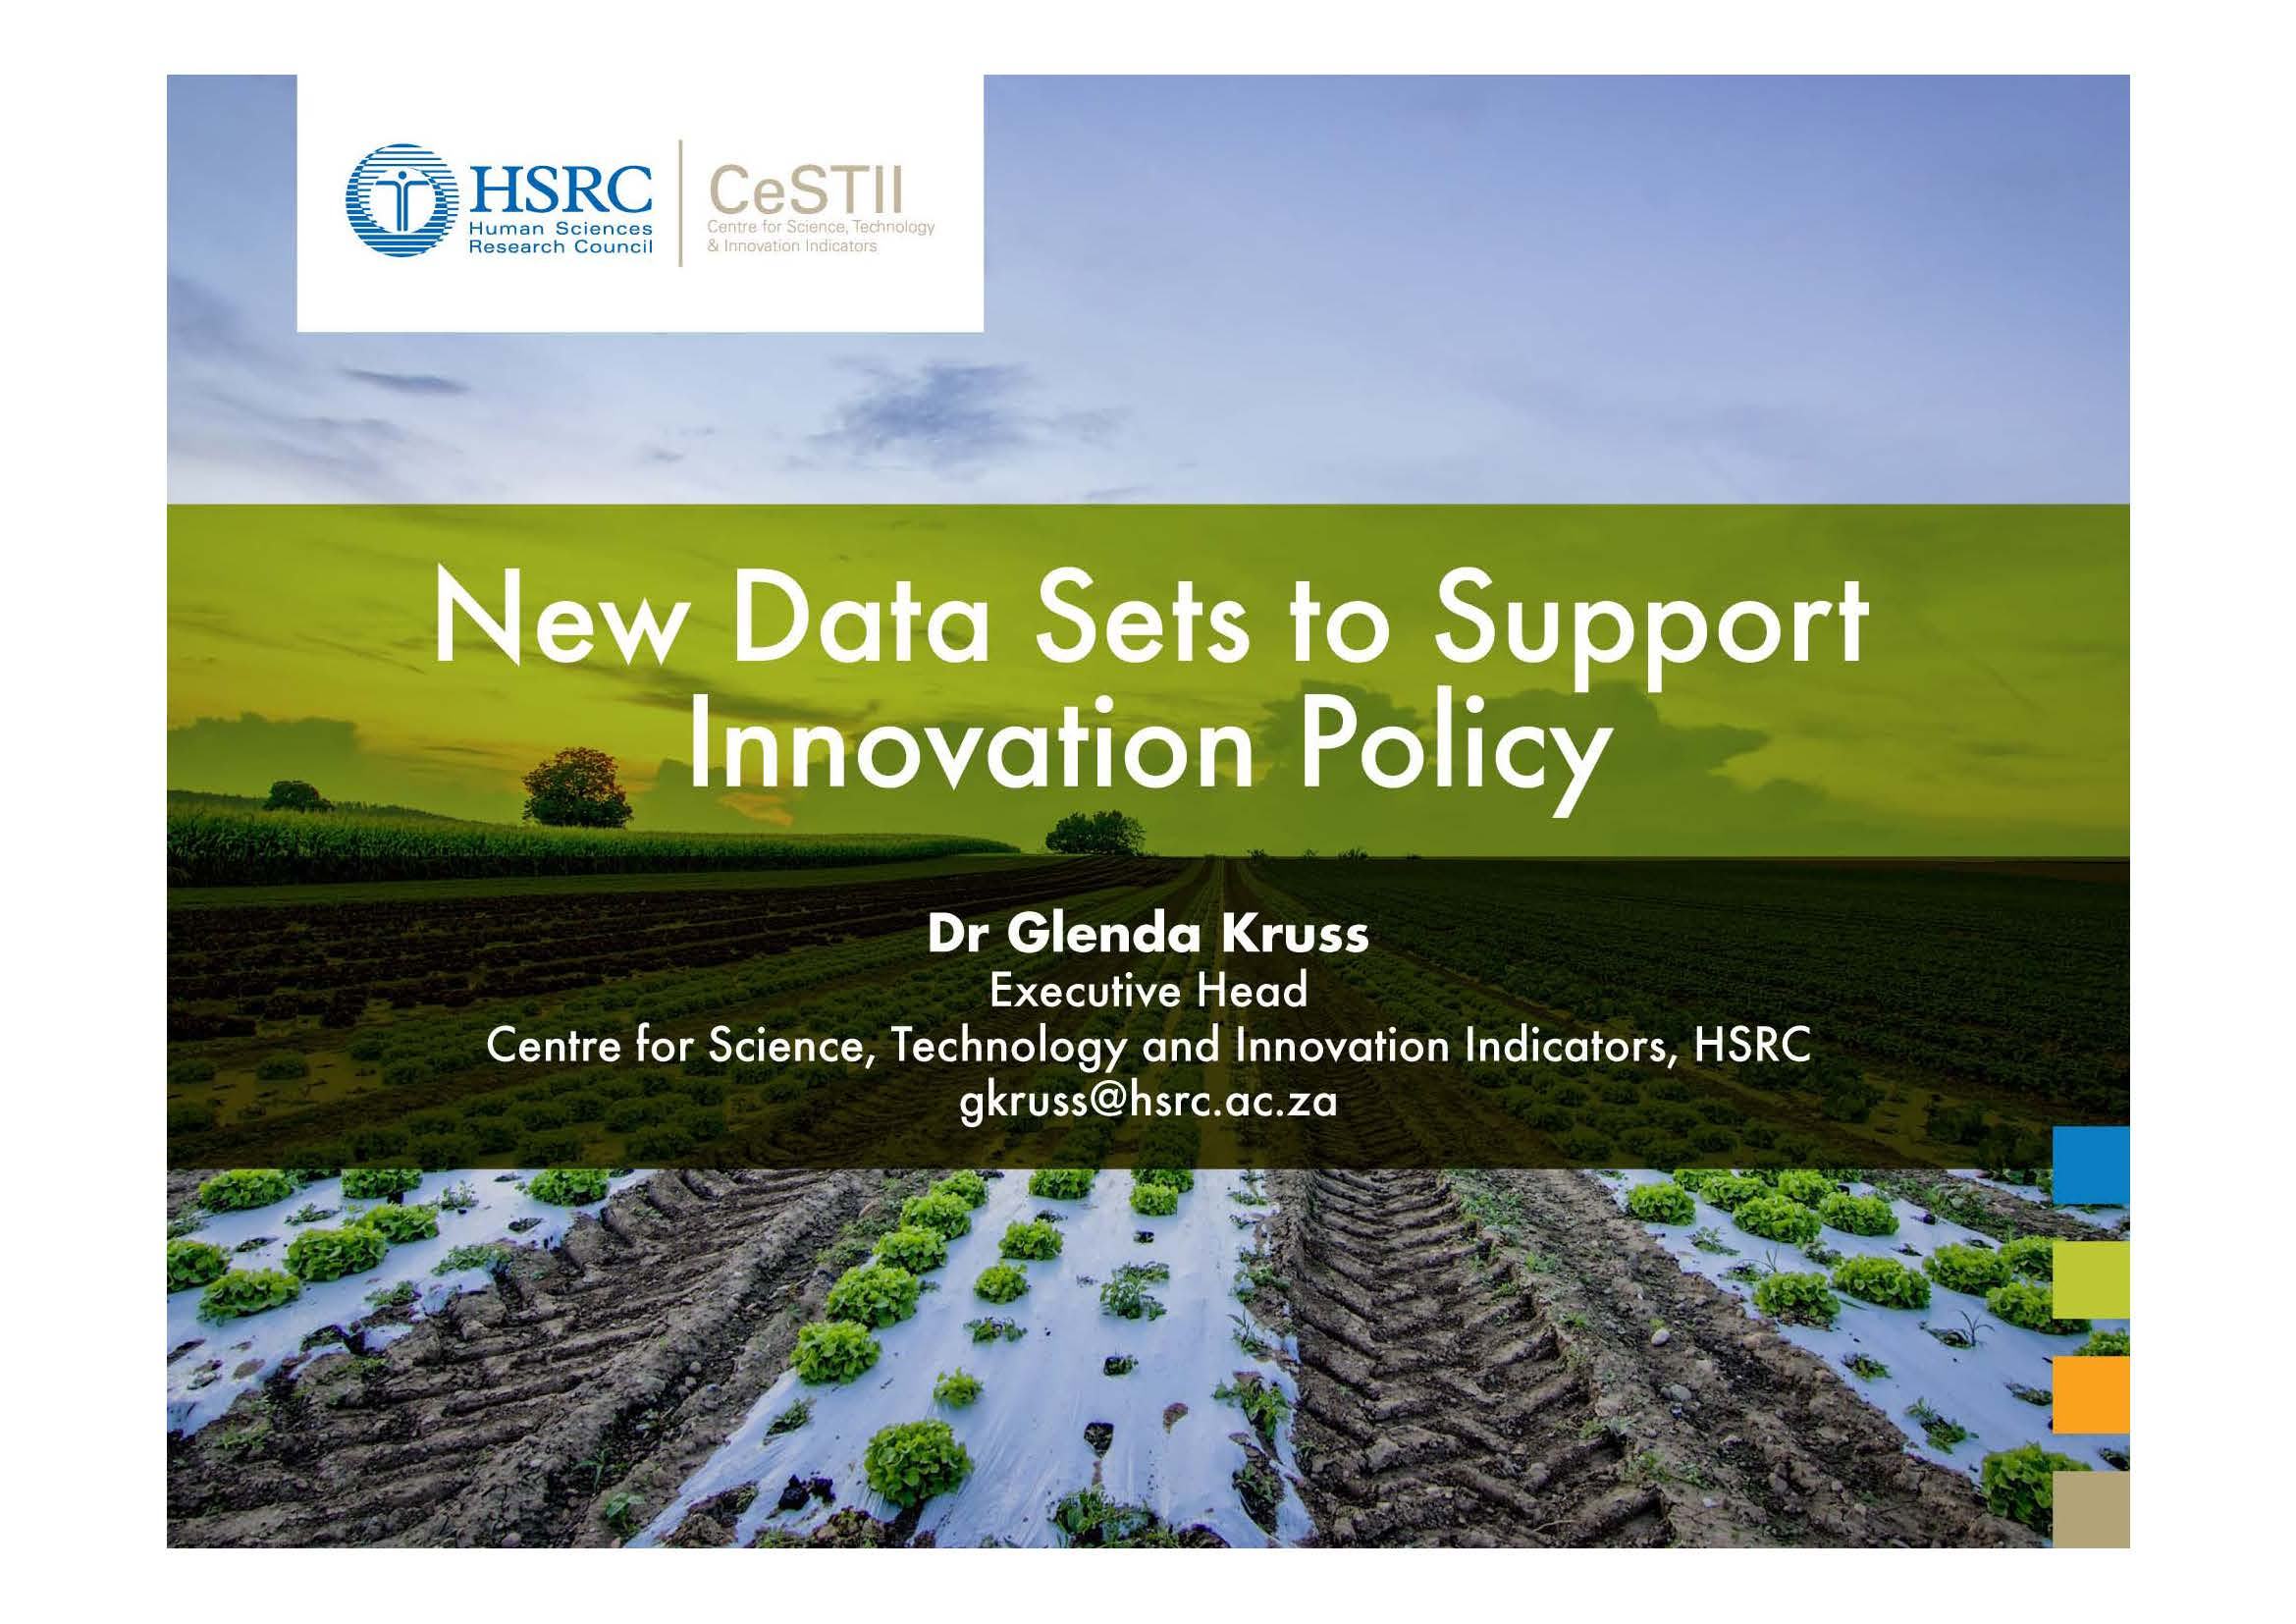 New Data Sets to Support Innovation Policy by Dr Kruss